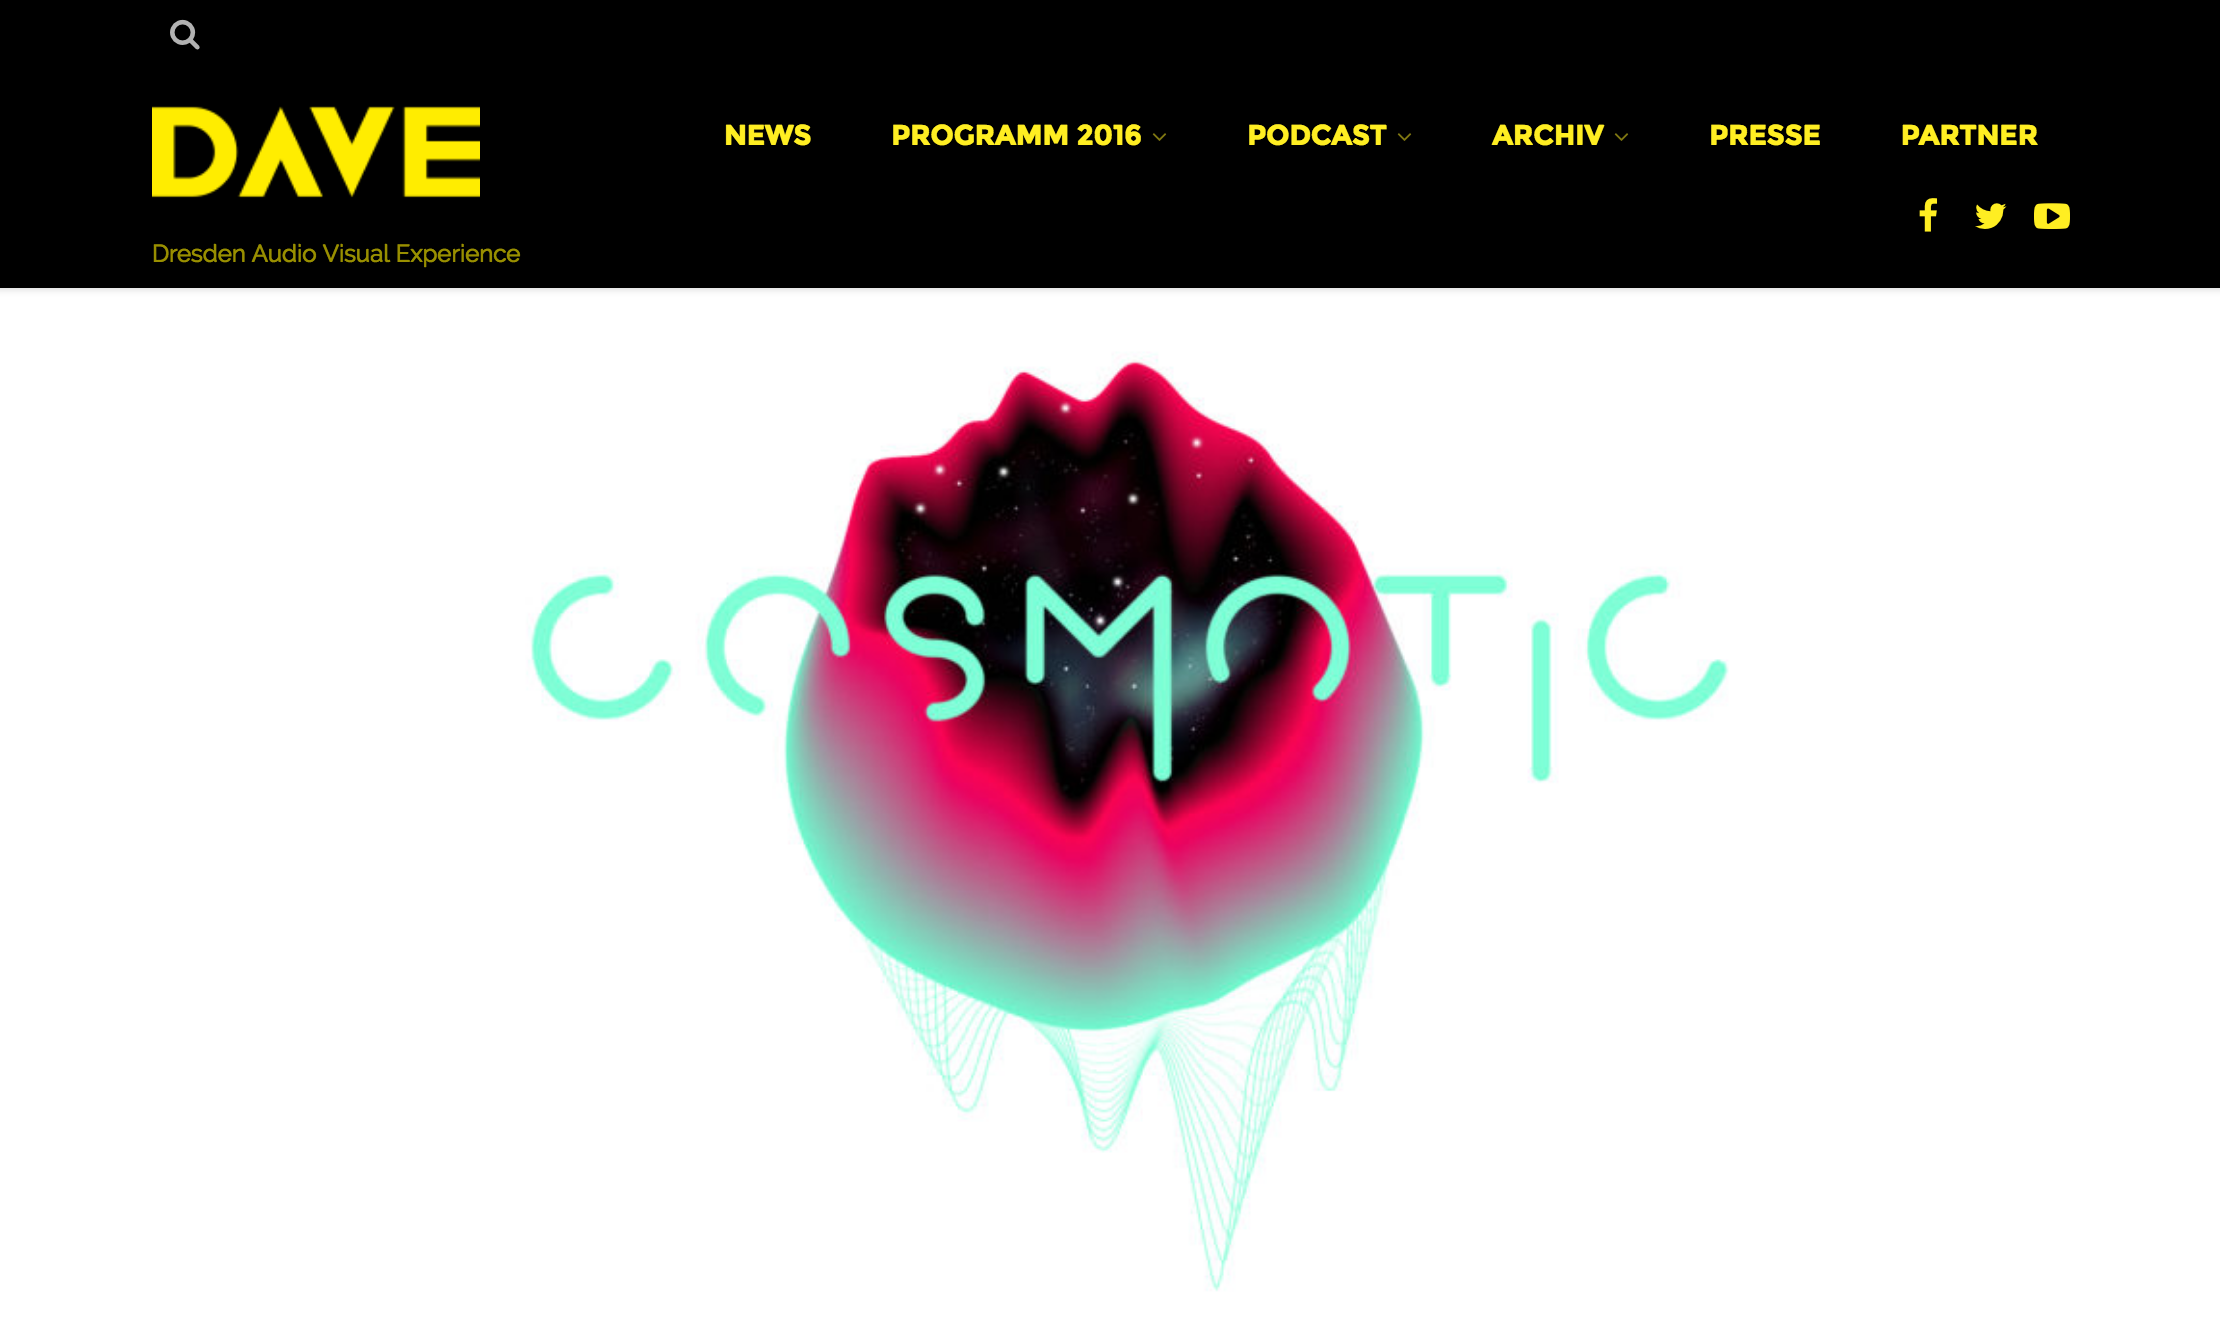 COSMOTIC @ DAVE